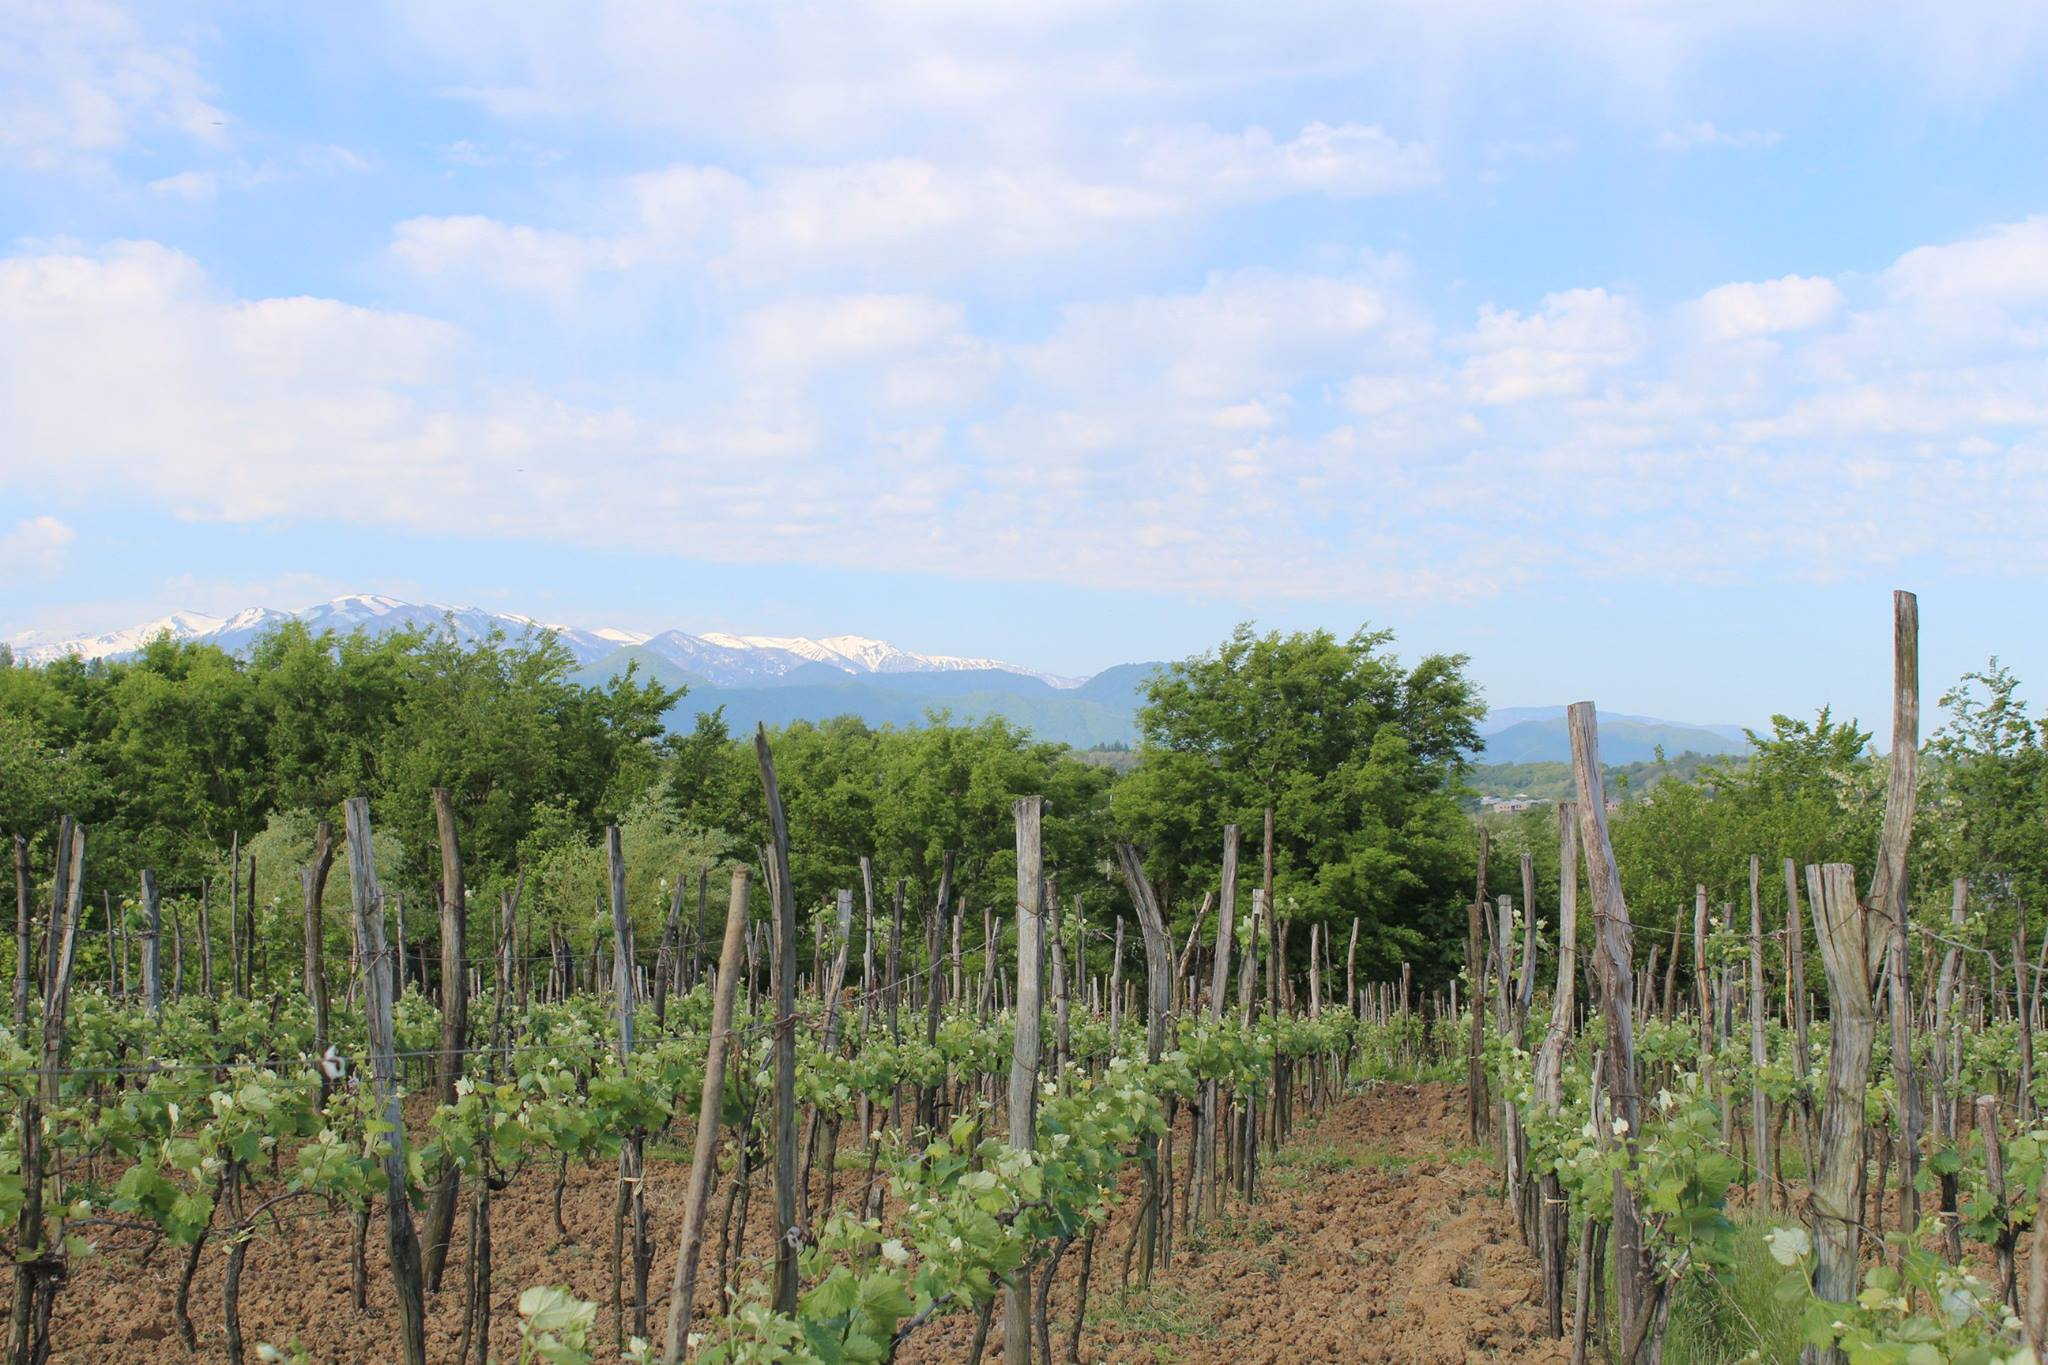 A number of organically grown vines producing high quality Georgian wine